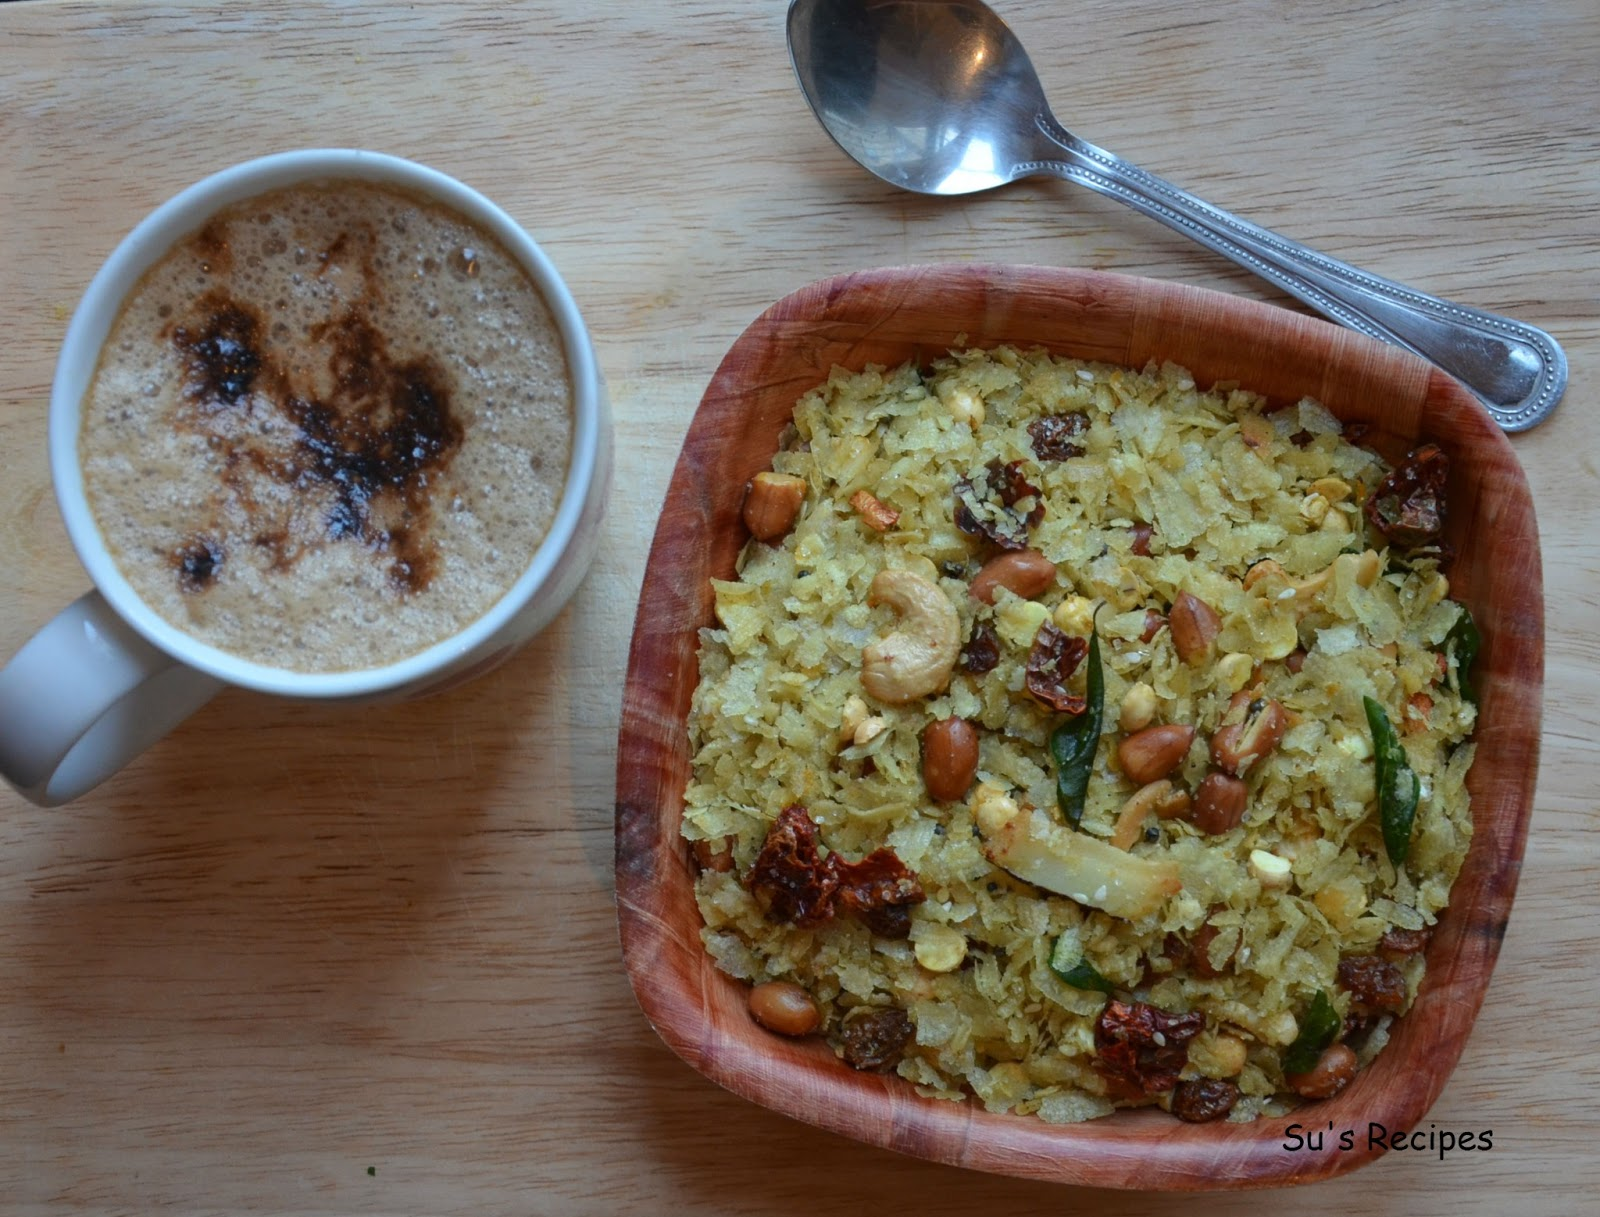 chivda mixture, pohe, poha, atukulu, aval, fried poha, snacks, Indian tea-time snack